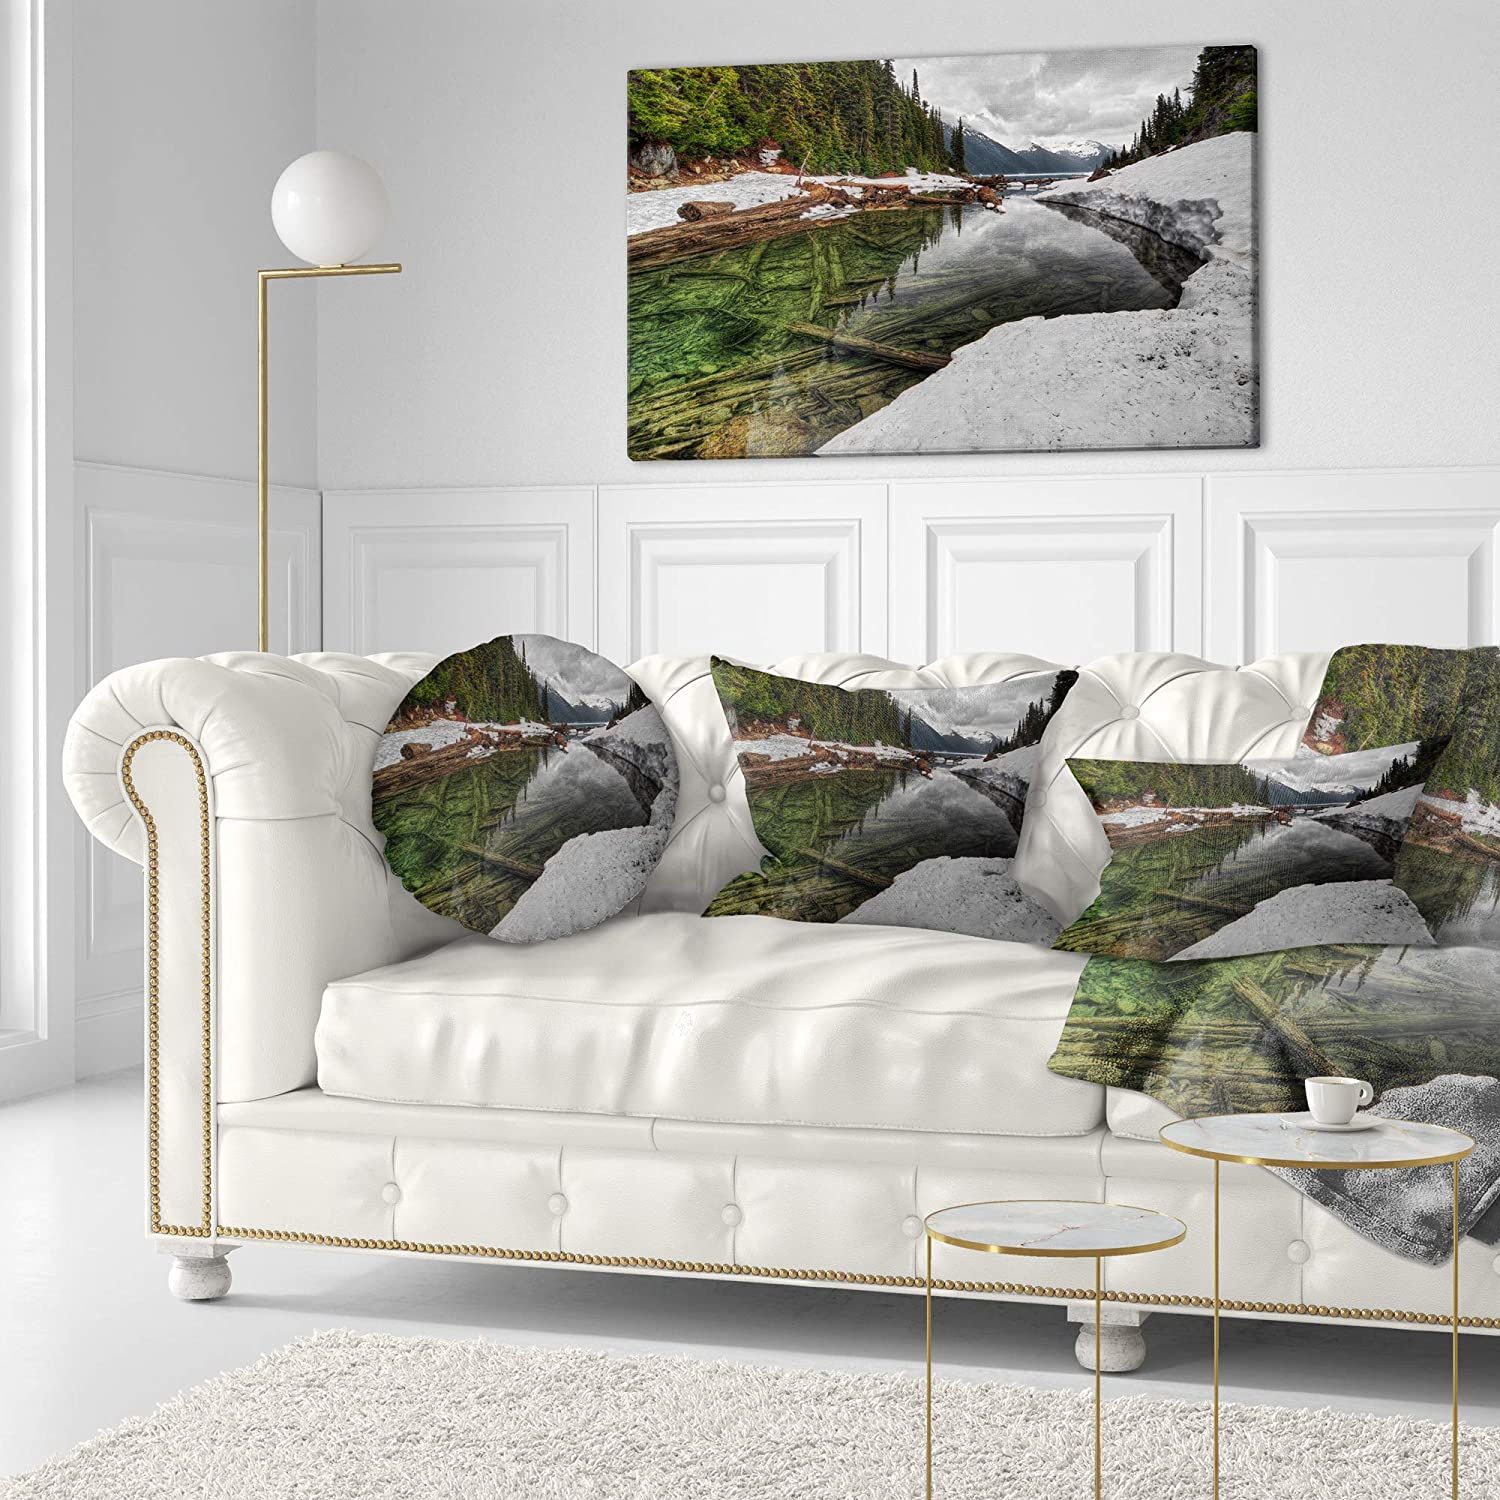 Designart Cu14409 12 20 Crystal Clear Lake With Pine Trees Landscape Printed Lumbar Cushion Cover For Living Room X 20 In In Sofa Throw Pillow 12 In